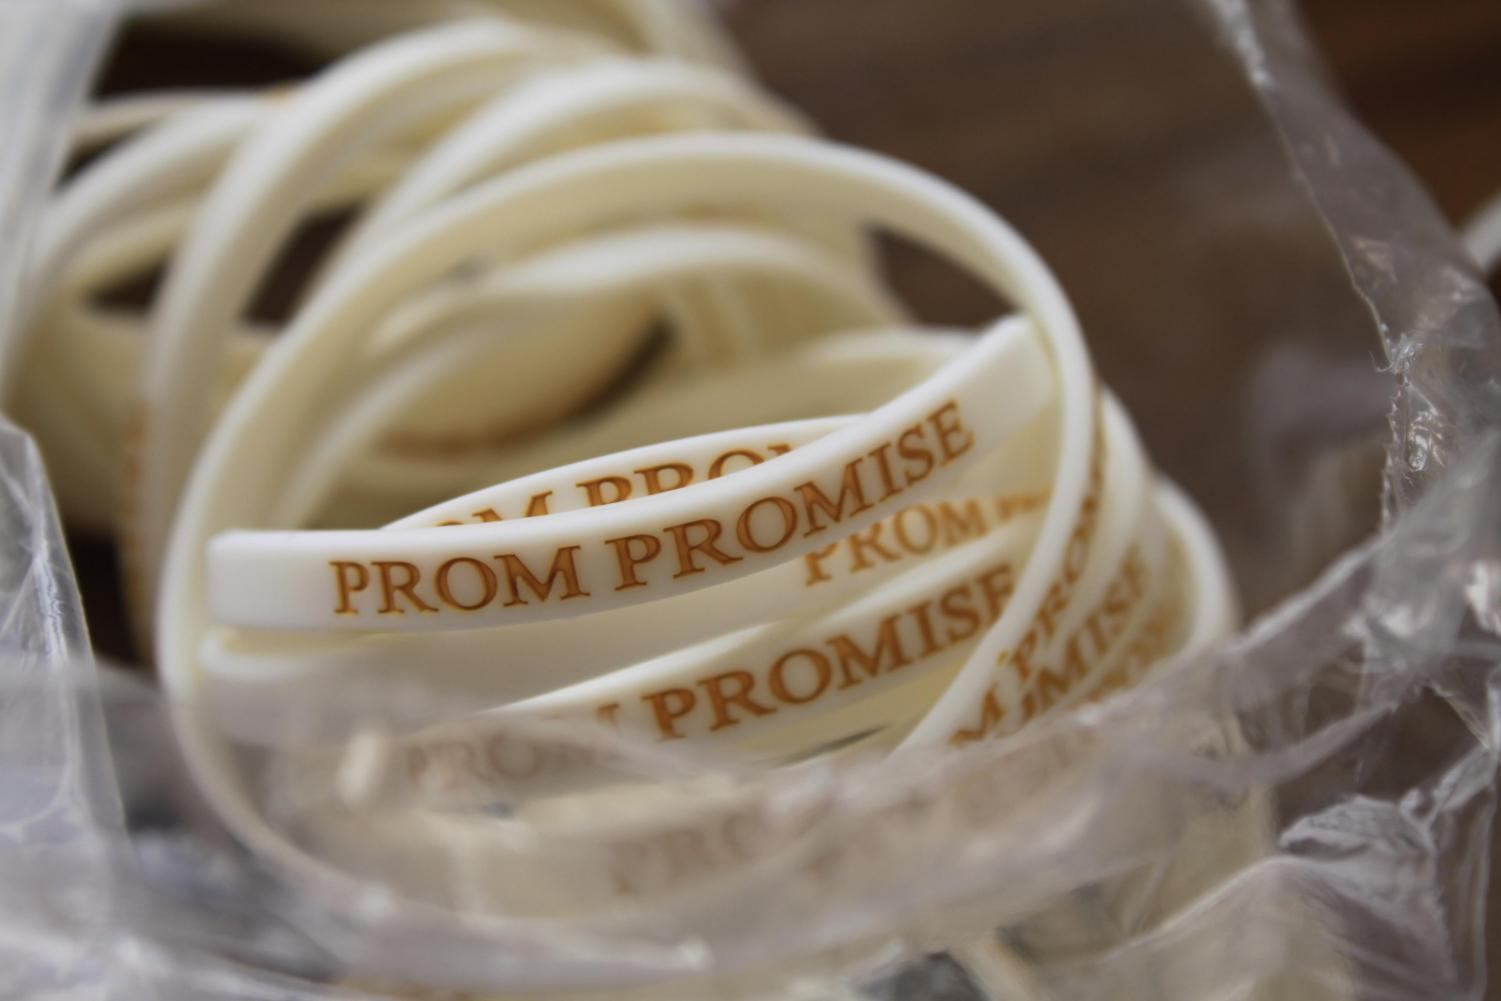 Bracelets are handed out to students who sign the prom promise